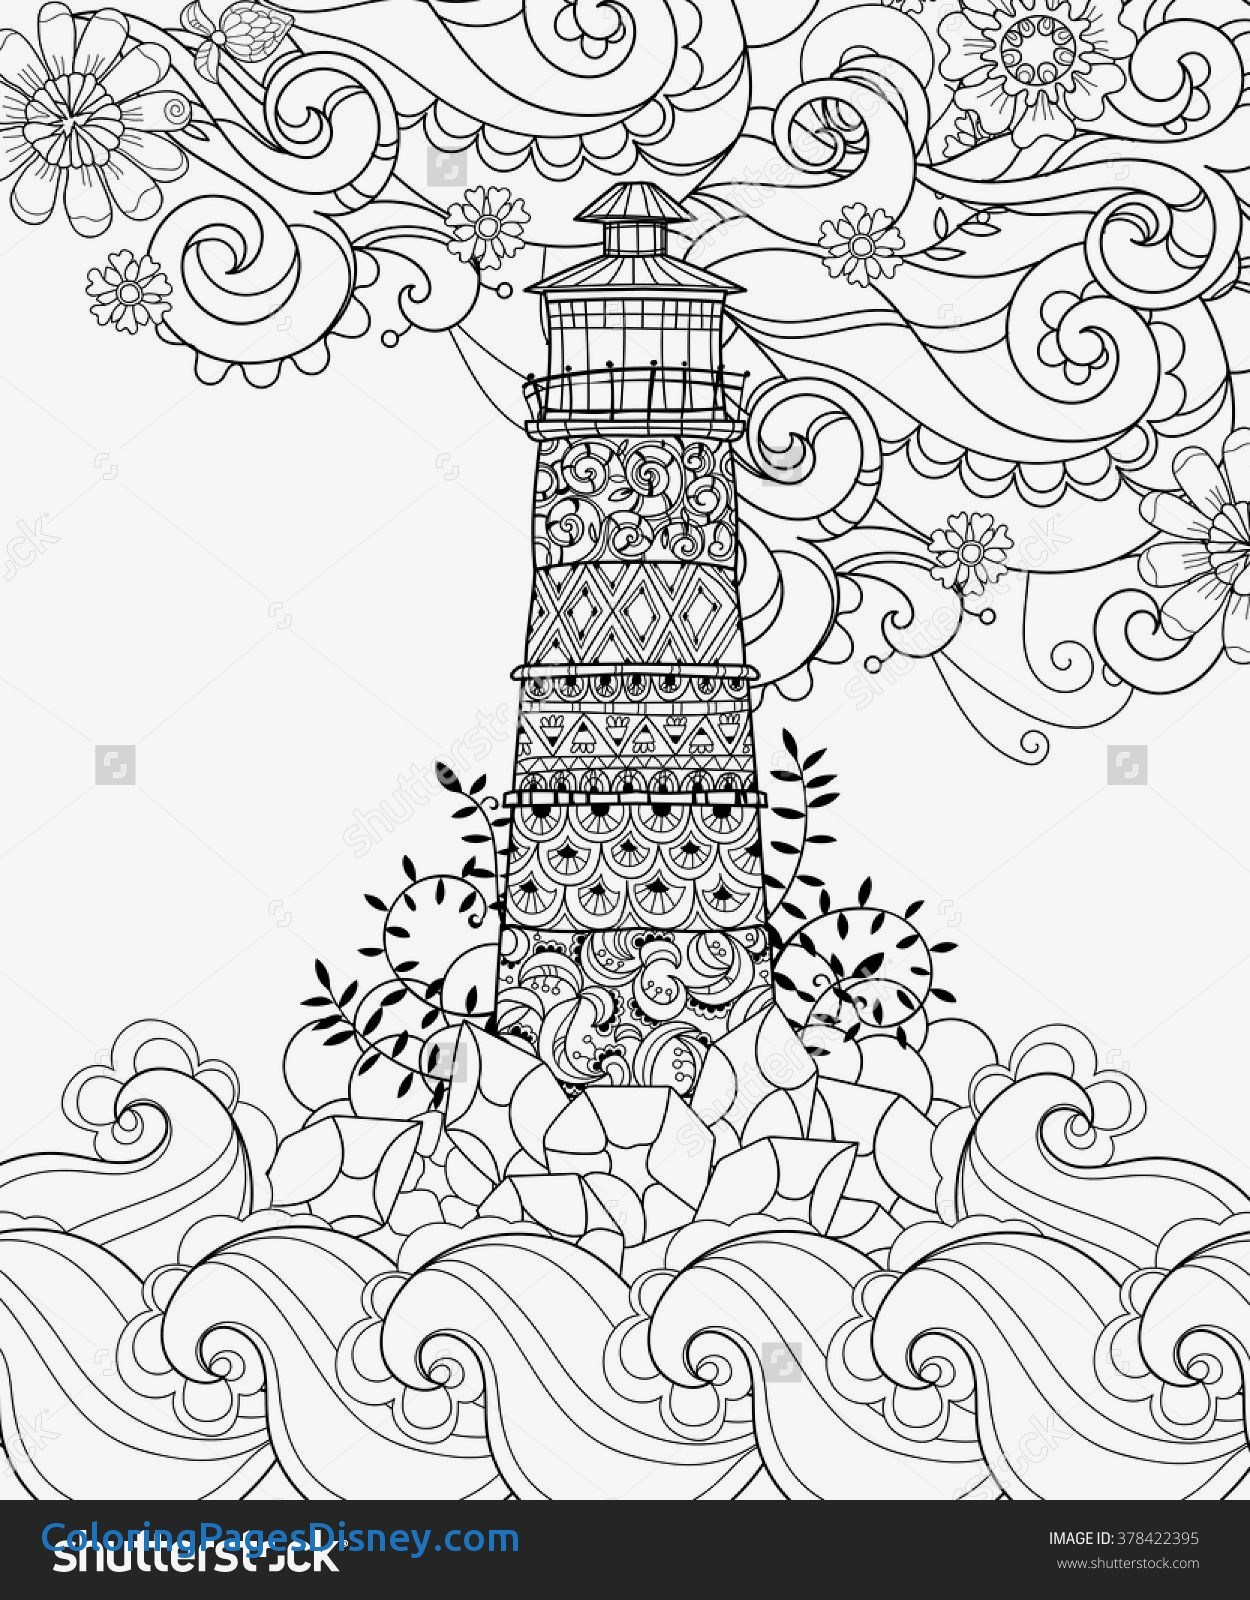 1250x1600 Zentangle Coloring Pages Fresh Hand Drawn Doodle Outline